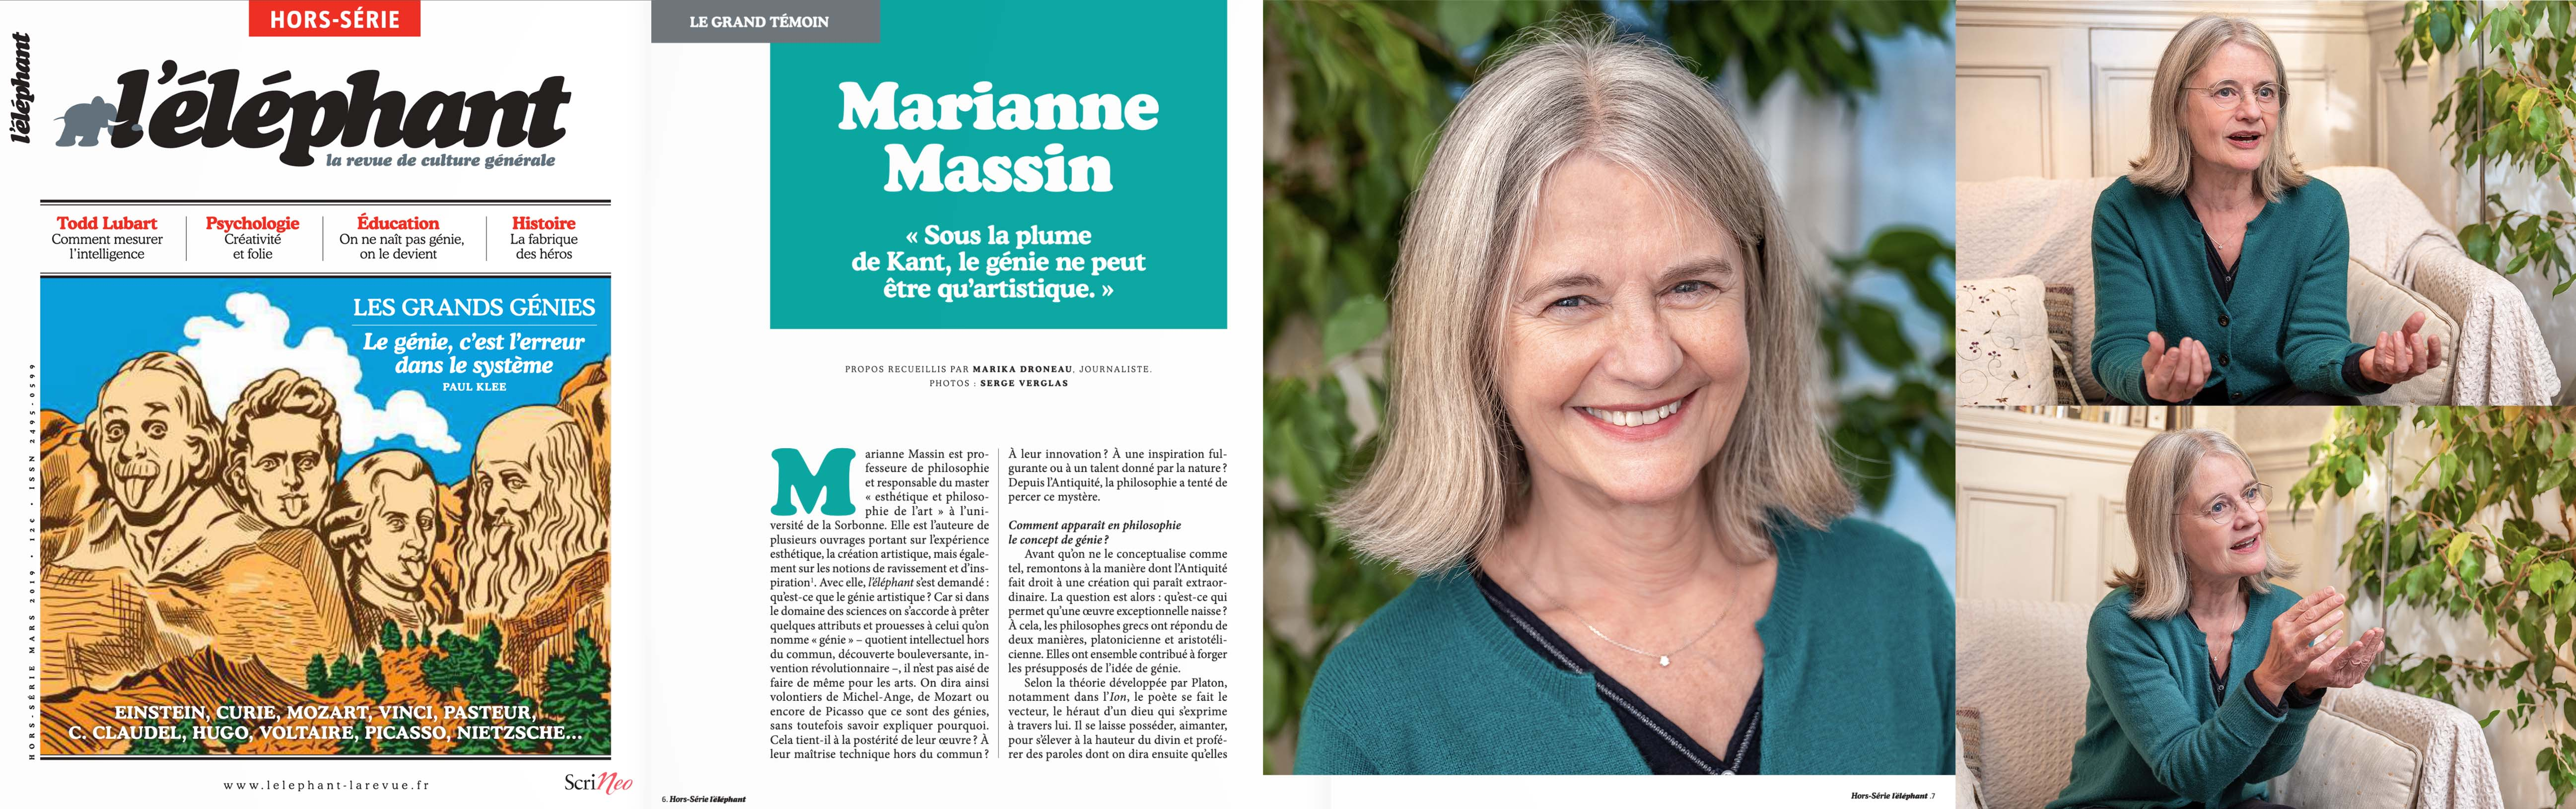 MARIANNE MASSIN 2019